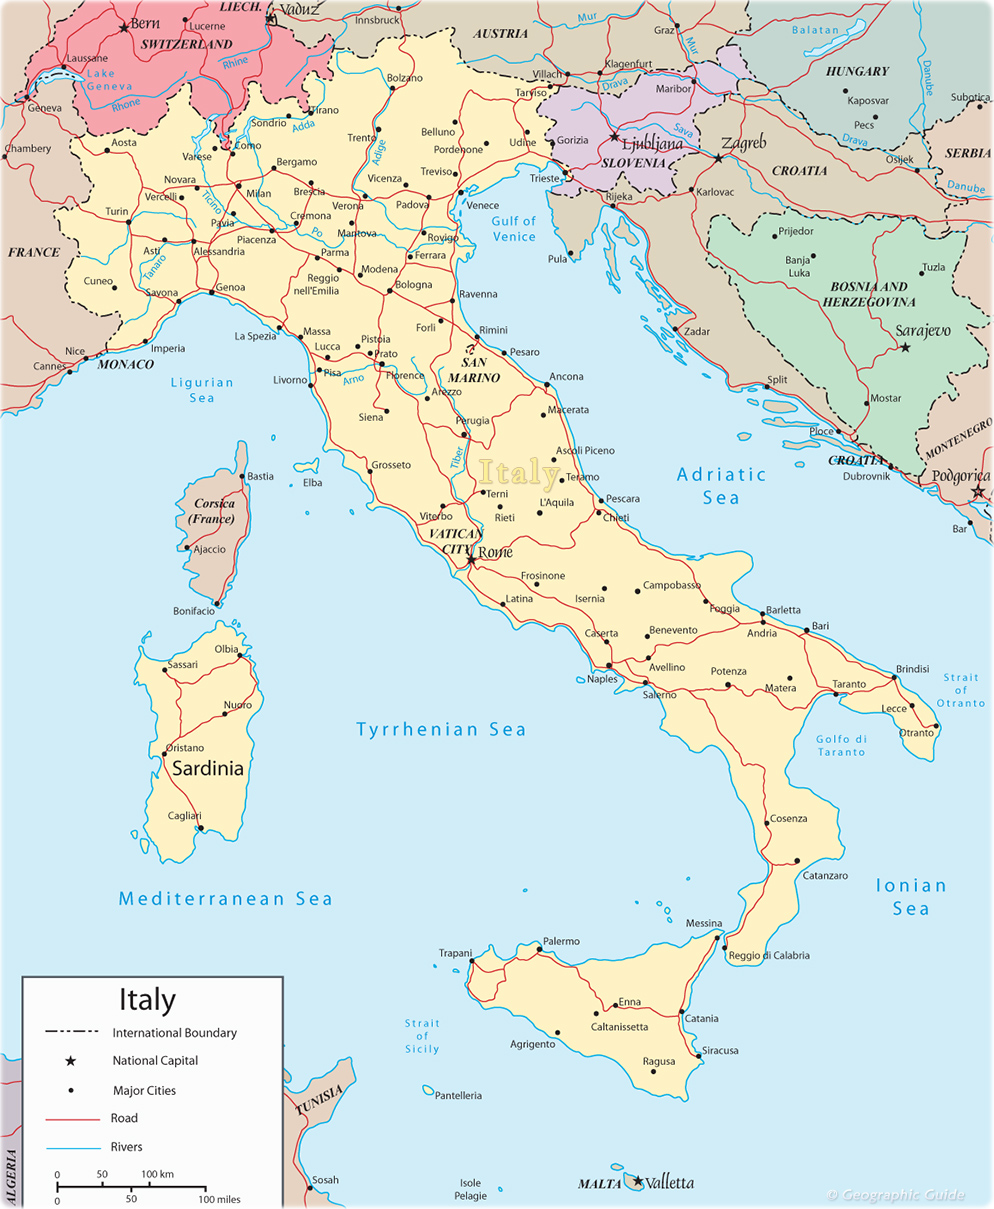 Italy Map - Travel Europe on map of turkey, map of europe, map of italy, map of croatia, map of monaco, map of sistine chapel, map of san marino, map of slovenia, map of liechtenstein, map of yugoslavia, map of venice, map of florence, map of france, map of malta, map of montenegro, map of kenya, map of rome, map of switzerland, map of macedonia, map of lesotho,